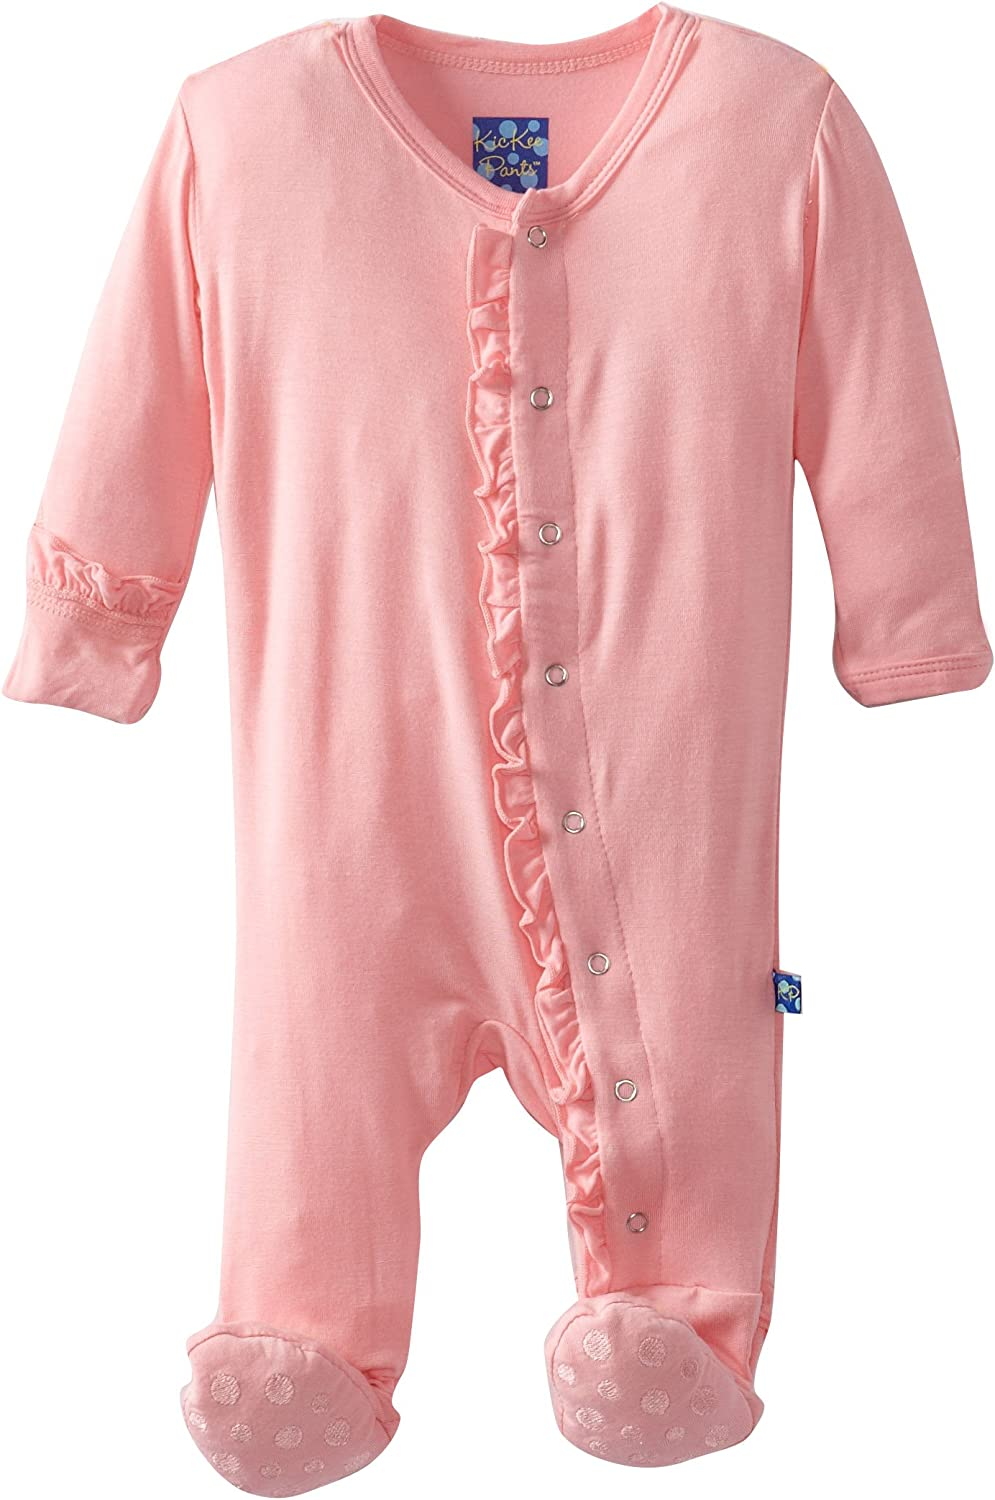 Kickee Pants Print Layette Classic Ruffle Footie with Zipper Apricot Octopus - 3-6 Months